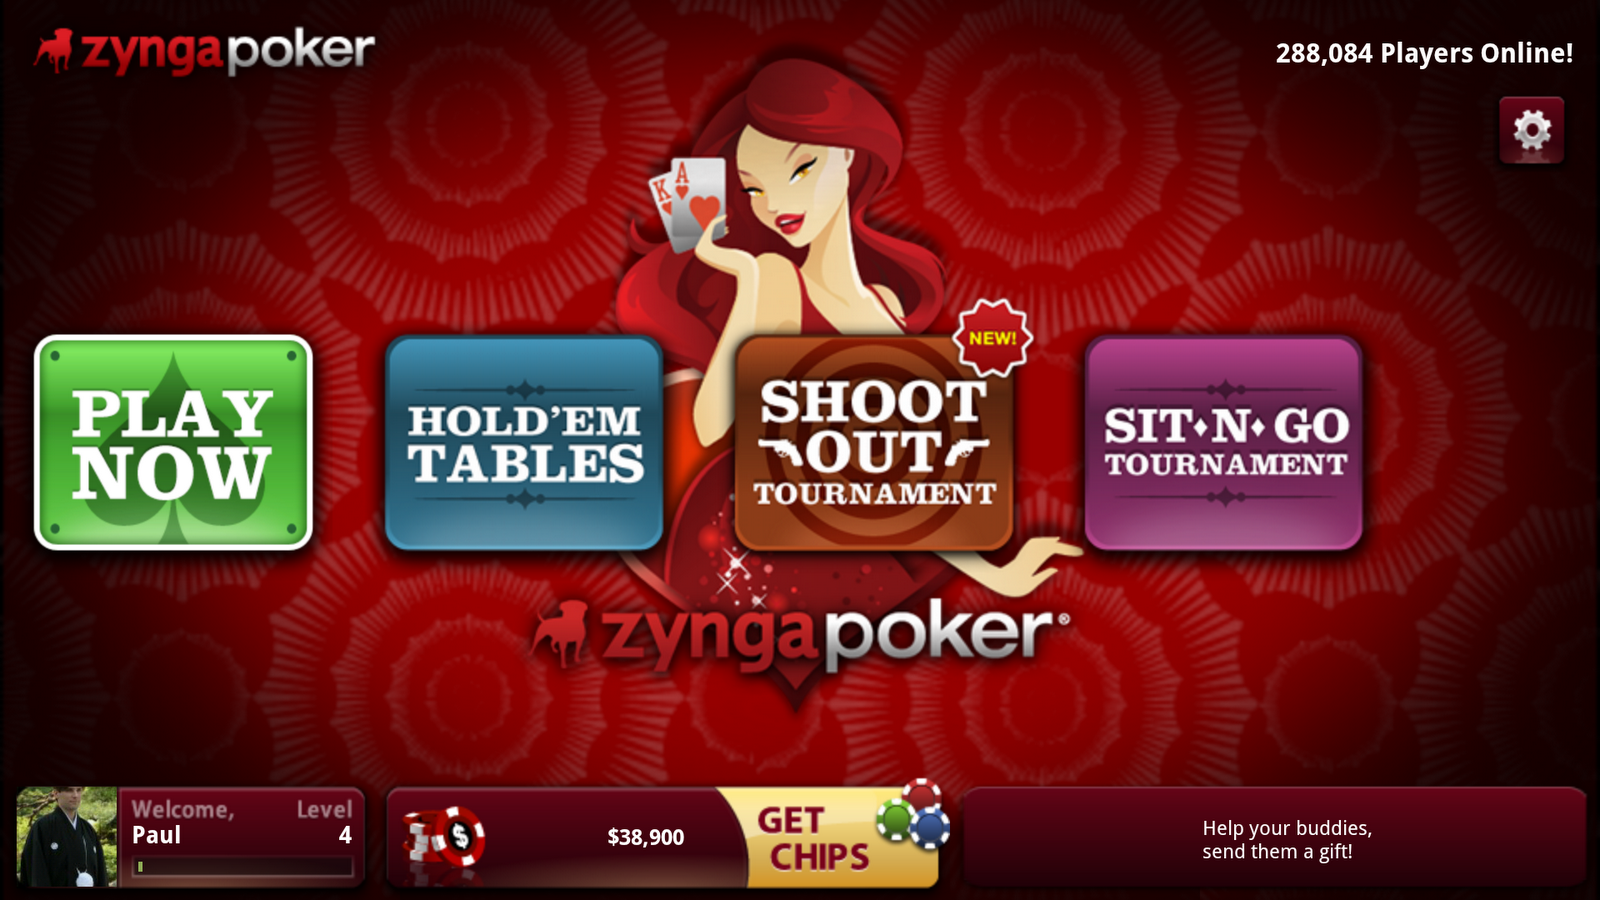 Zynga gambling platform boulder station casino music the fab